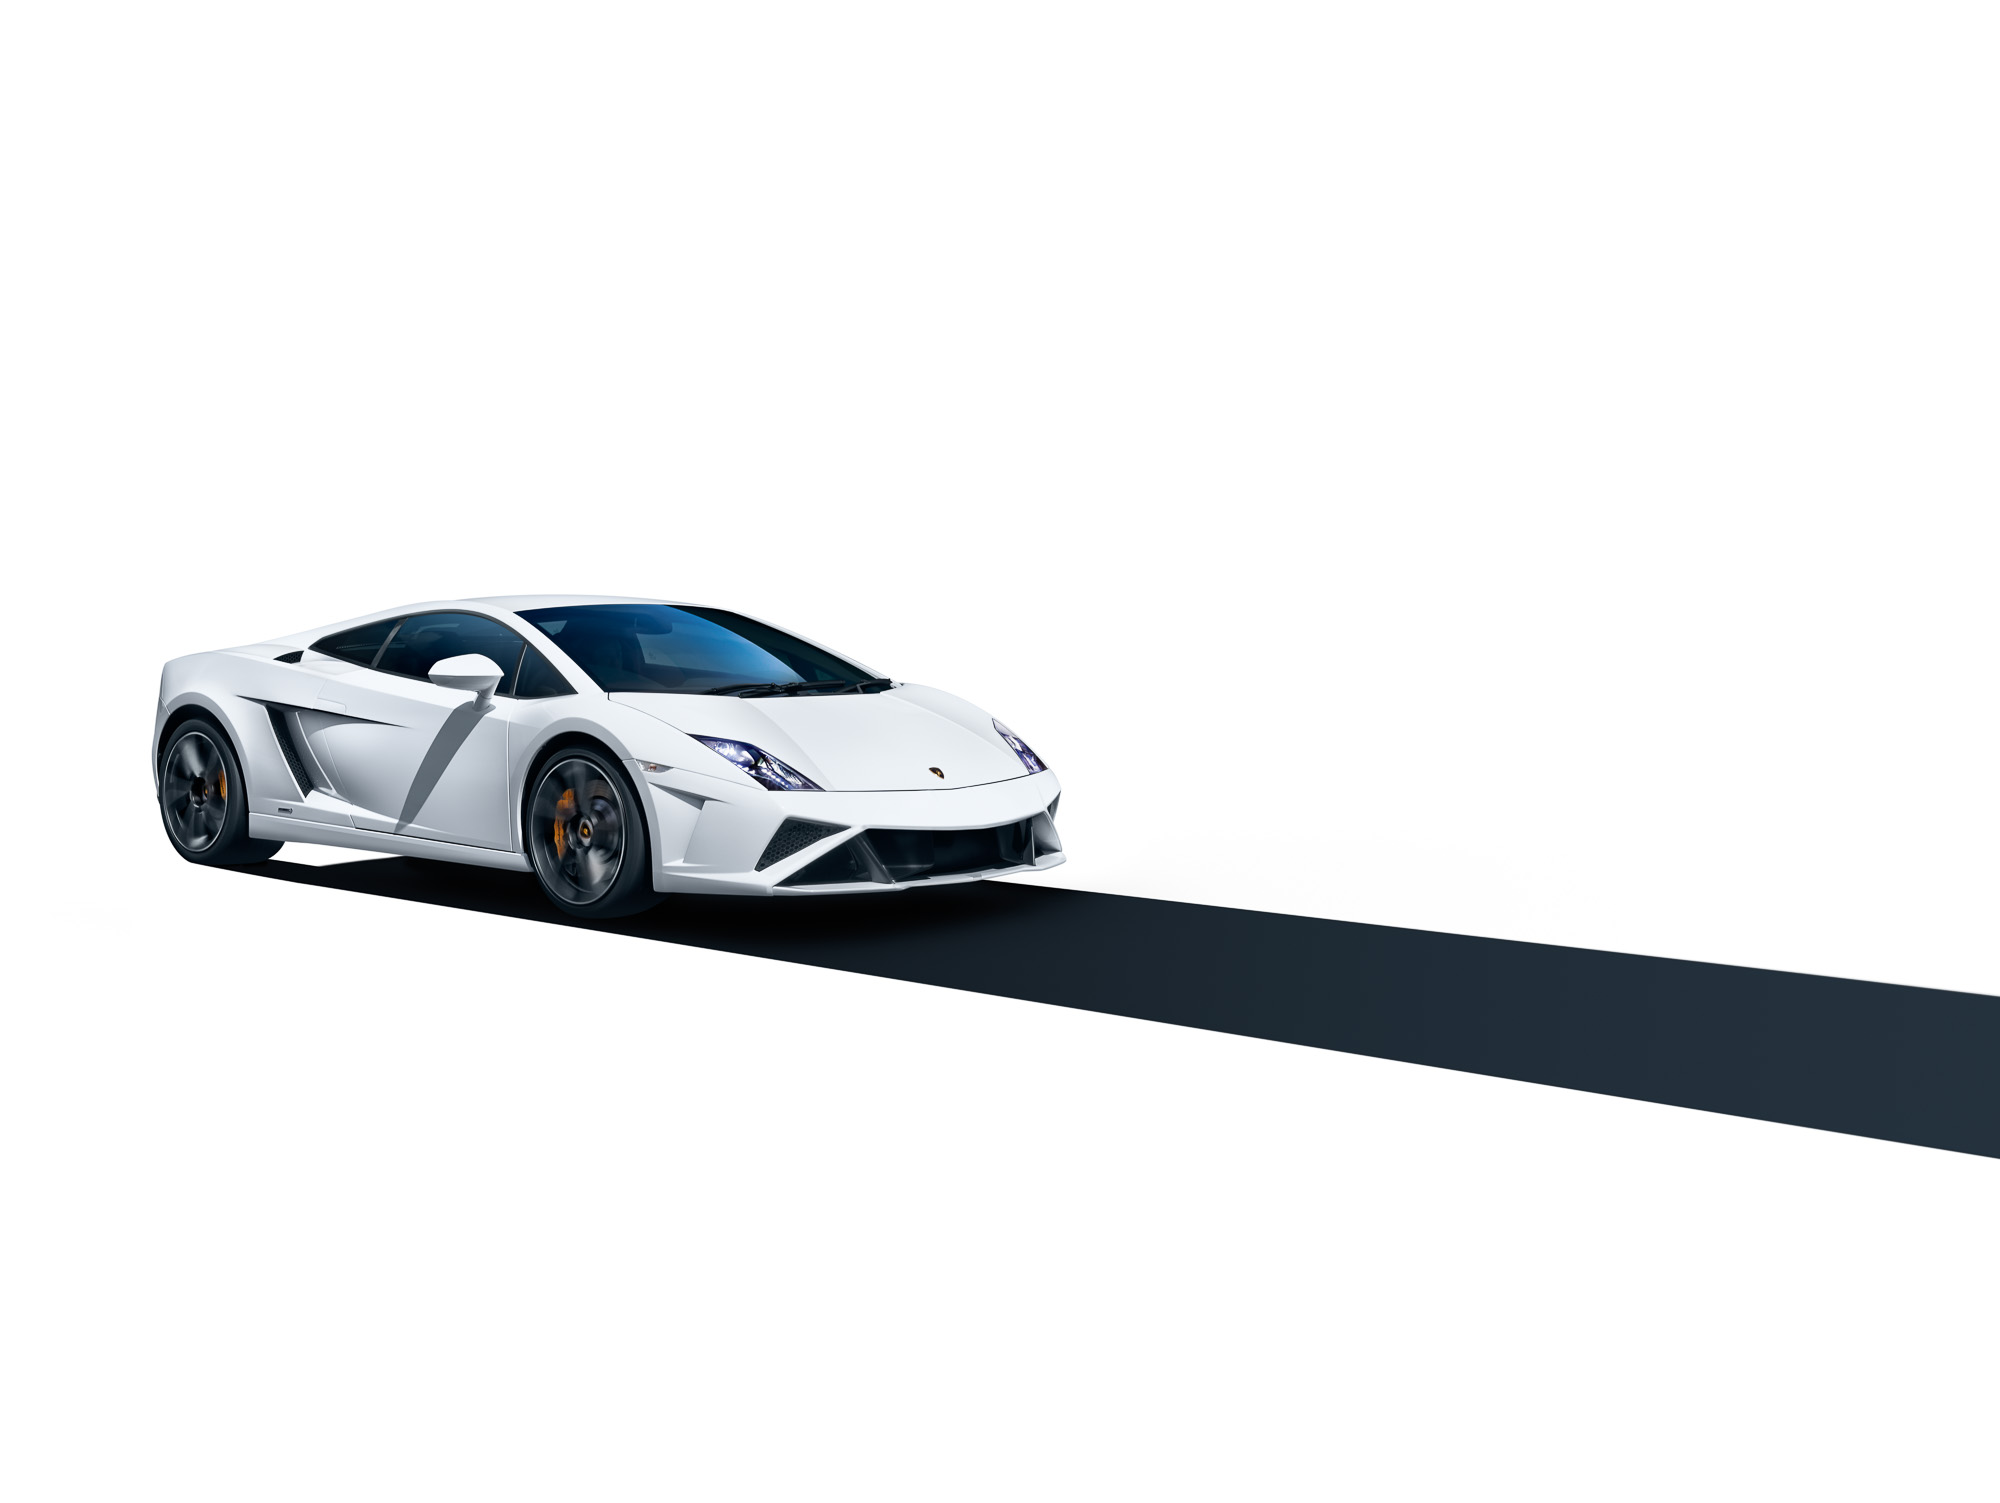 migs-foto-cgi-hong-kong-car-automotive-photography-photographer-lamborghini-gallardo-lp560-4-white-photoshoot-carshoot-front-3q-angle-2-2K